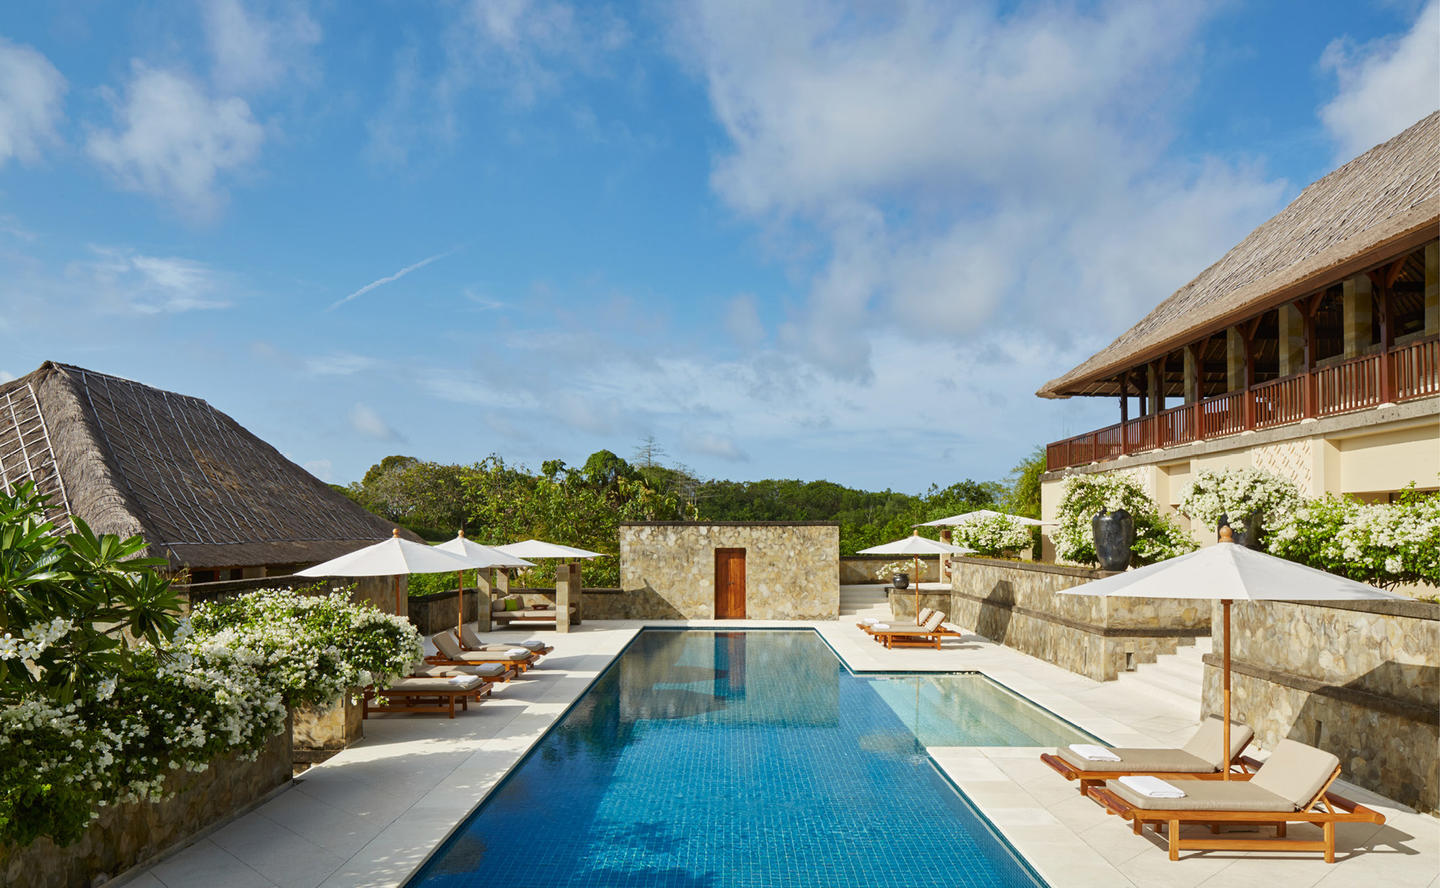 Swimming Pool & Terrace, Two-Bedroom Villa - Aman Villas at Nusa Dua, Bali